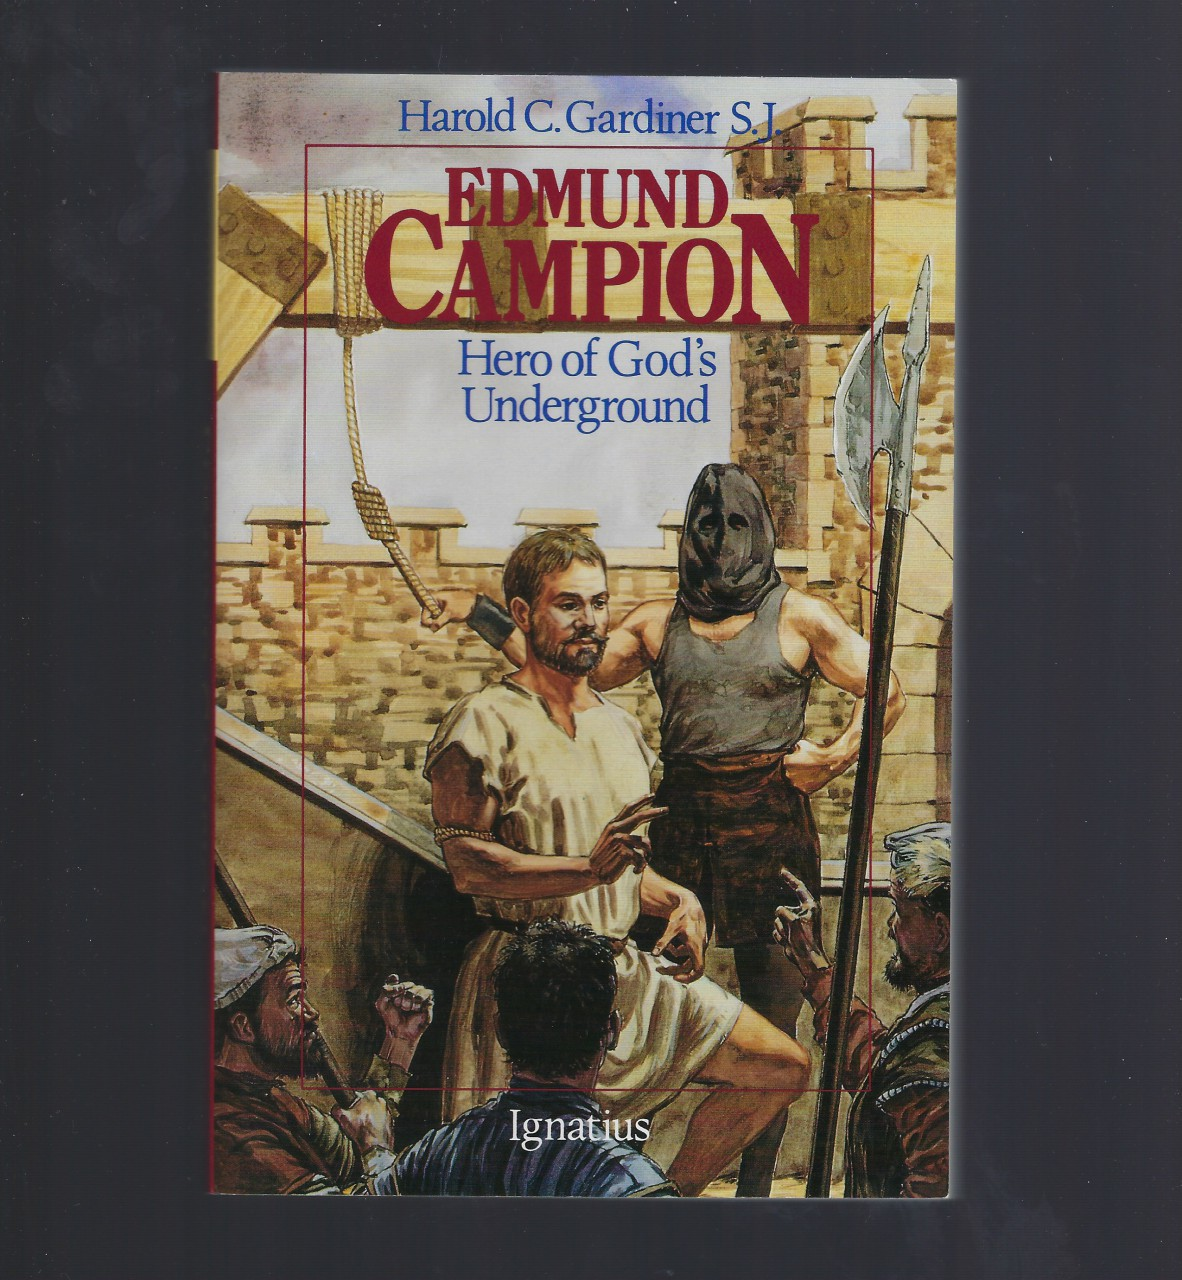 Edmund Campion: Hero of God's Underground (Vision Books), Harold C. Gardiner